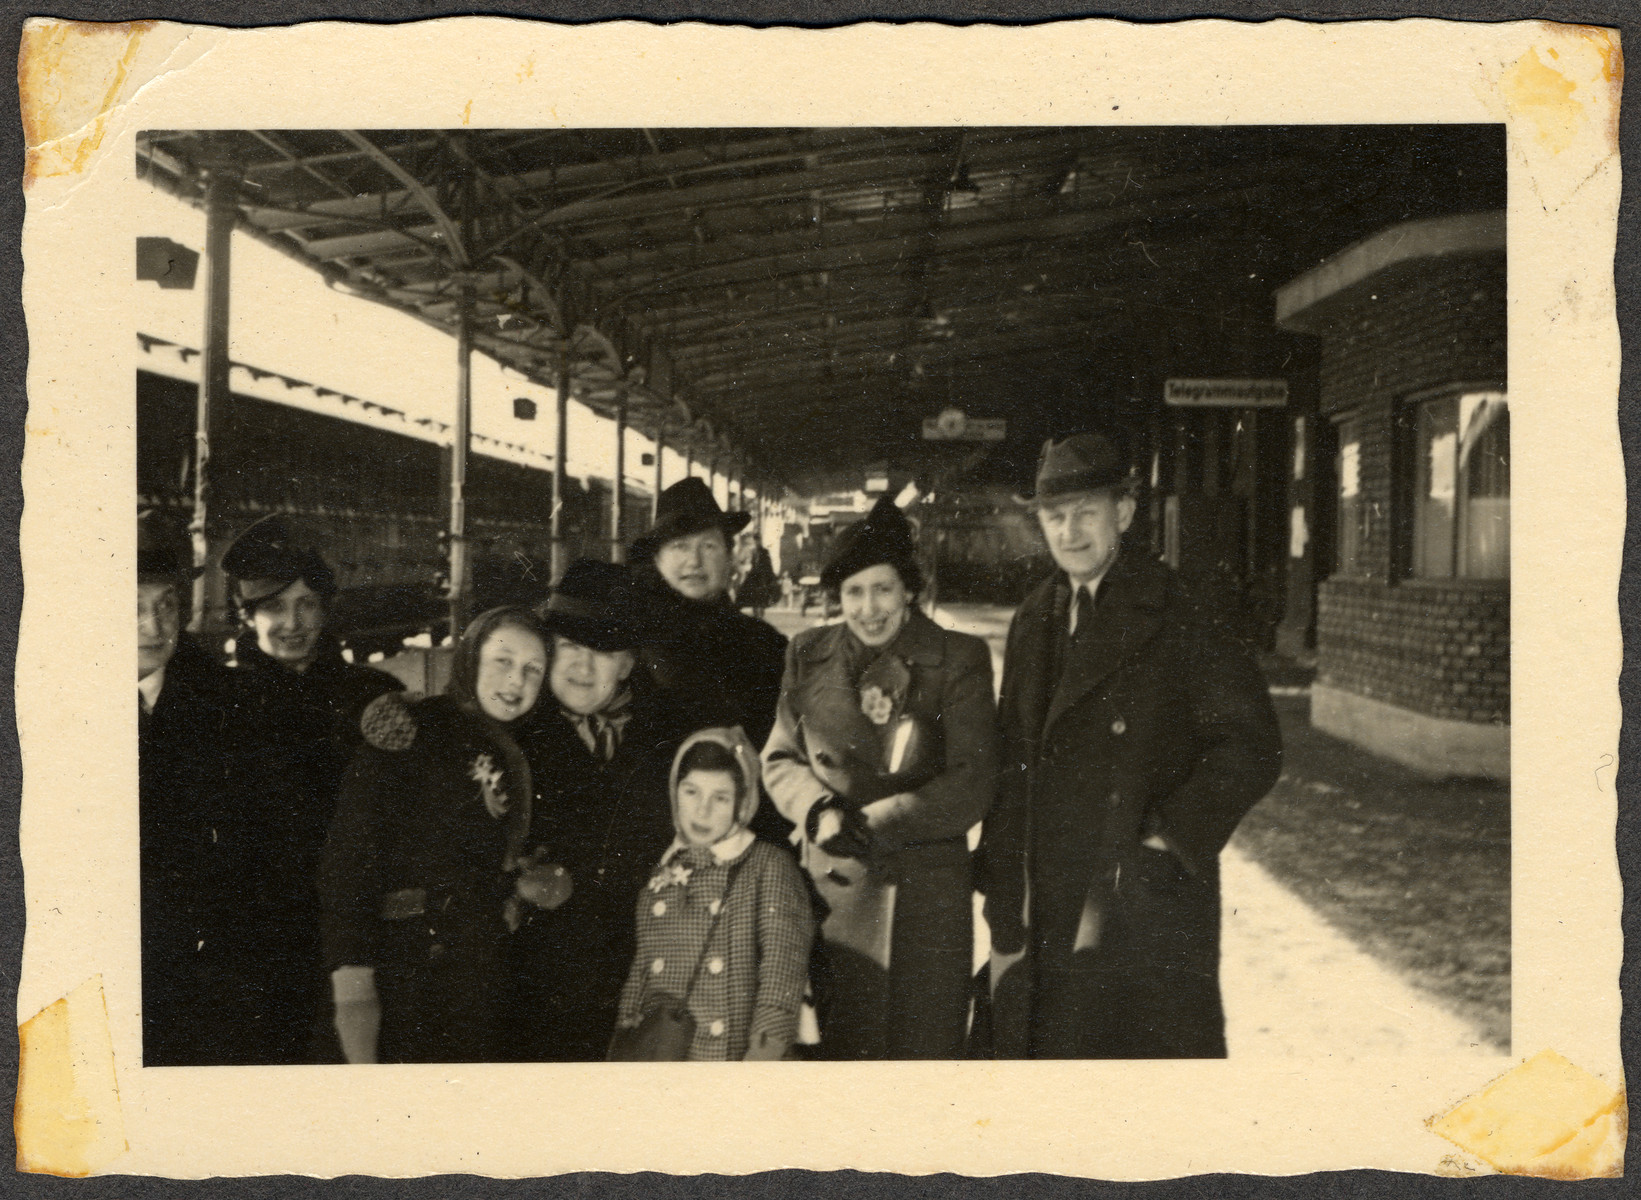 The Seligman family poses for a family photo at the Regensburg train station just before leaving to immigrate to the United States.  Among those pictured are Julius and Rose Seligman, with their daughters Ellen and Margit.